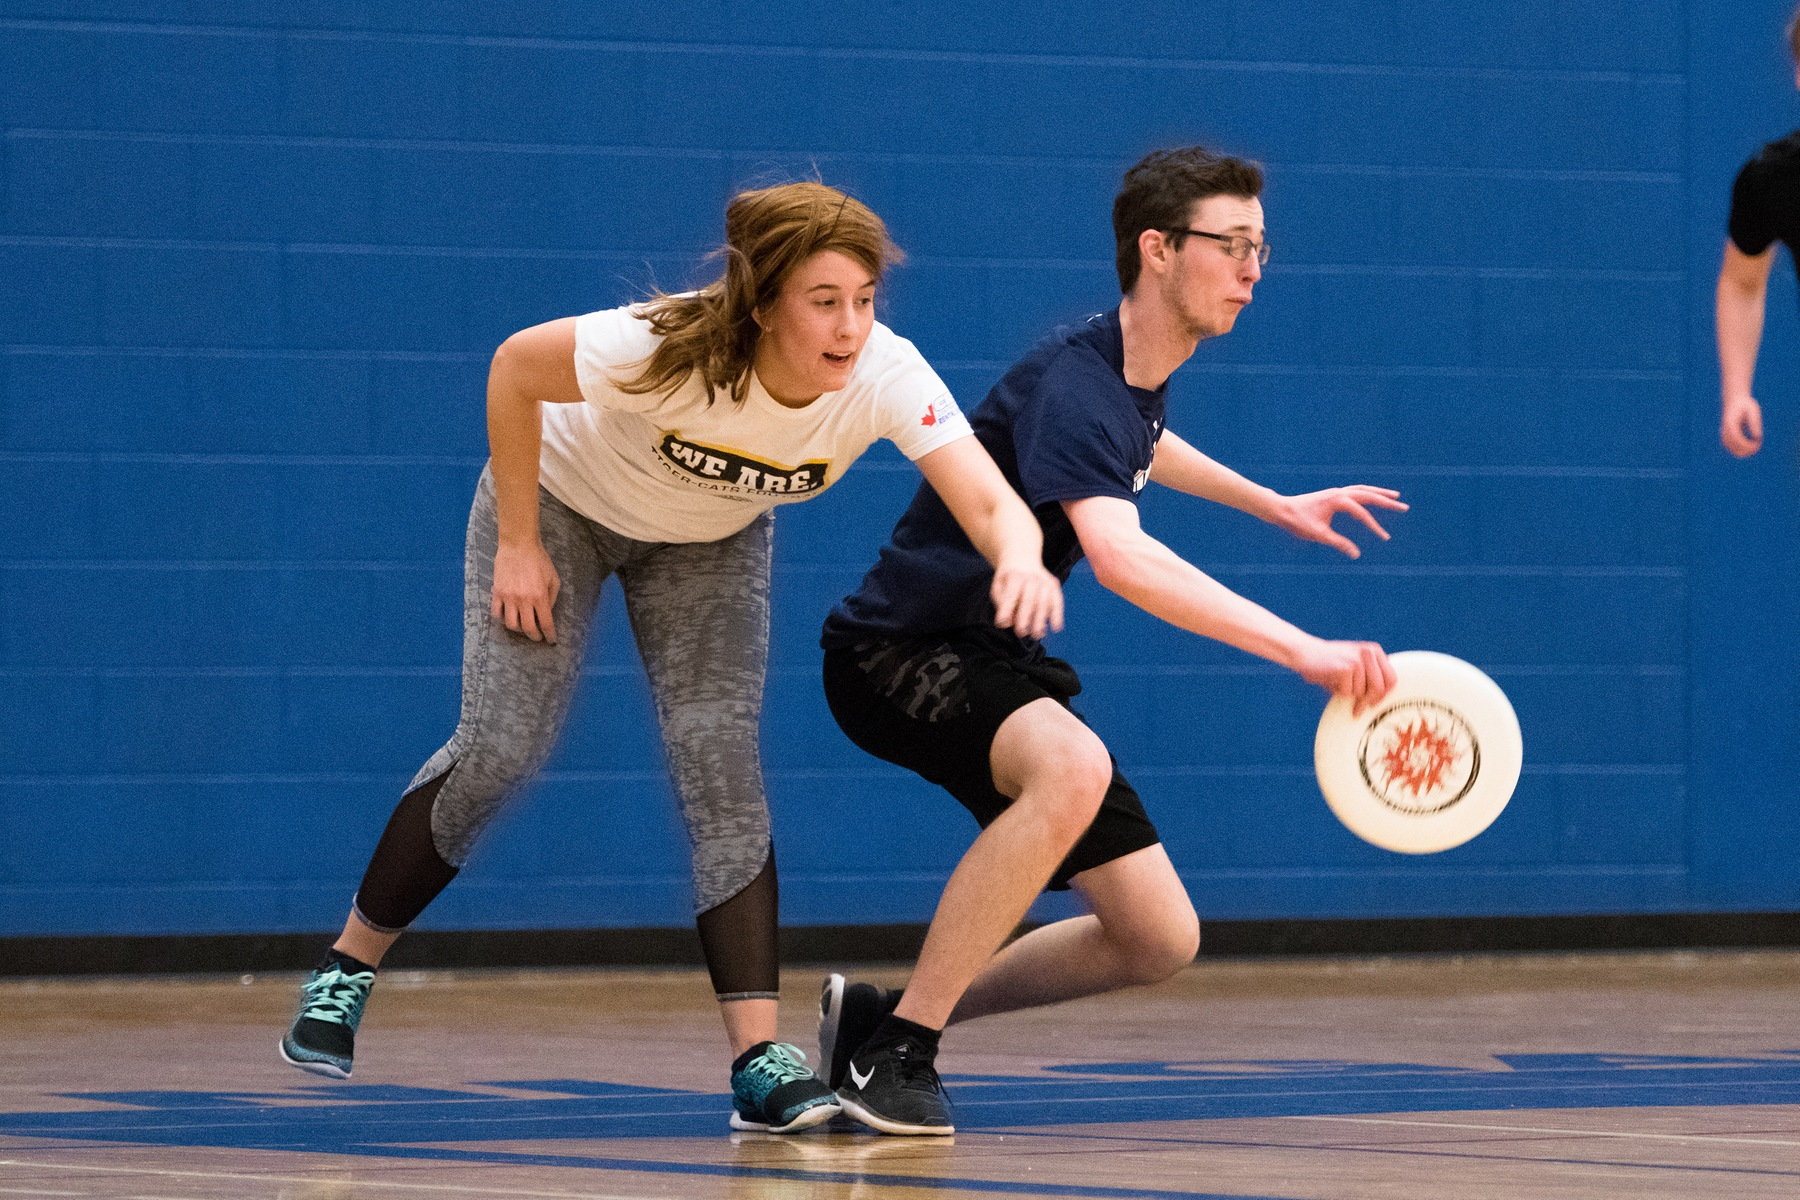 PHOTOS: Intramural Ultimate Frisbee